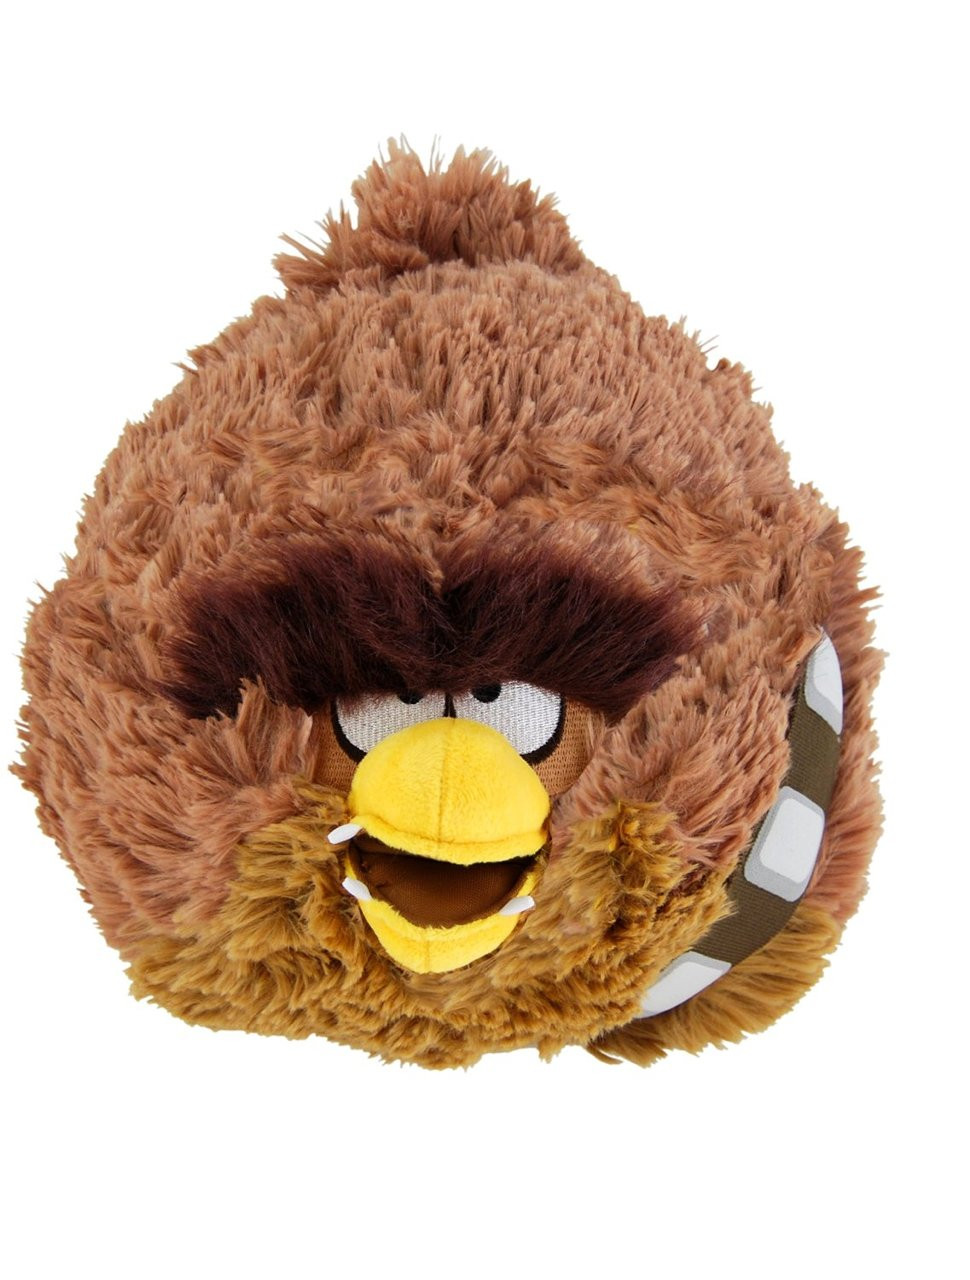 Angry Birds Star Wars Large 16 Inch Plush Toy - Chewbacca